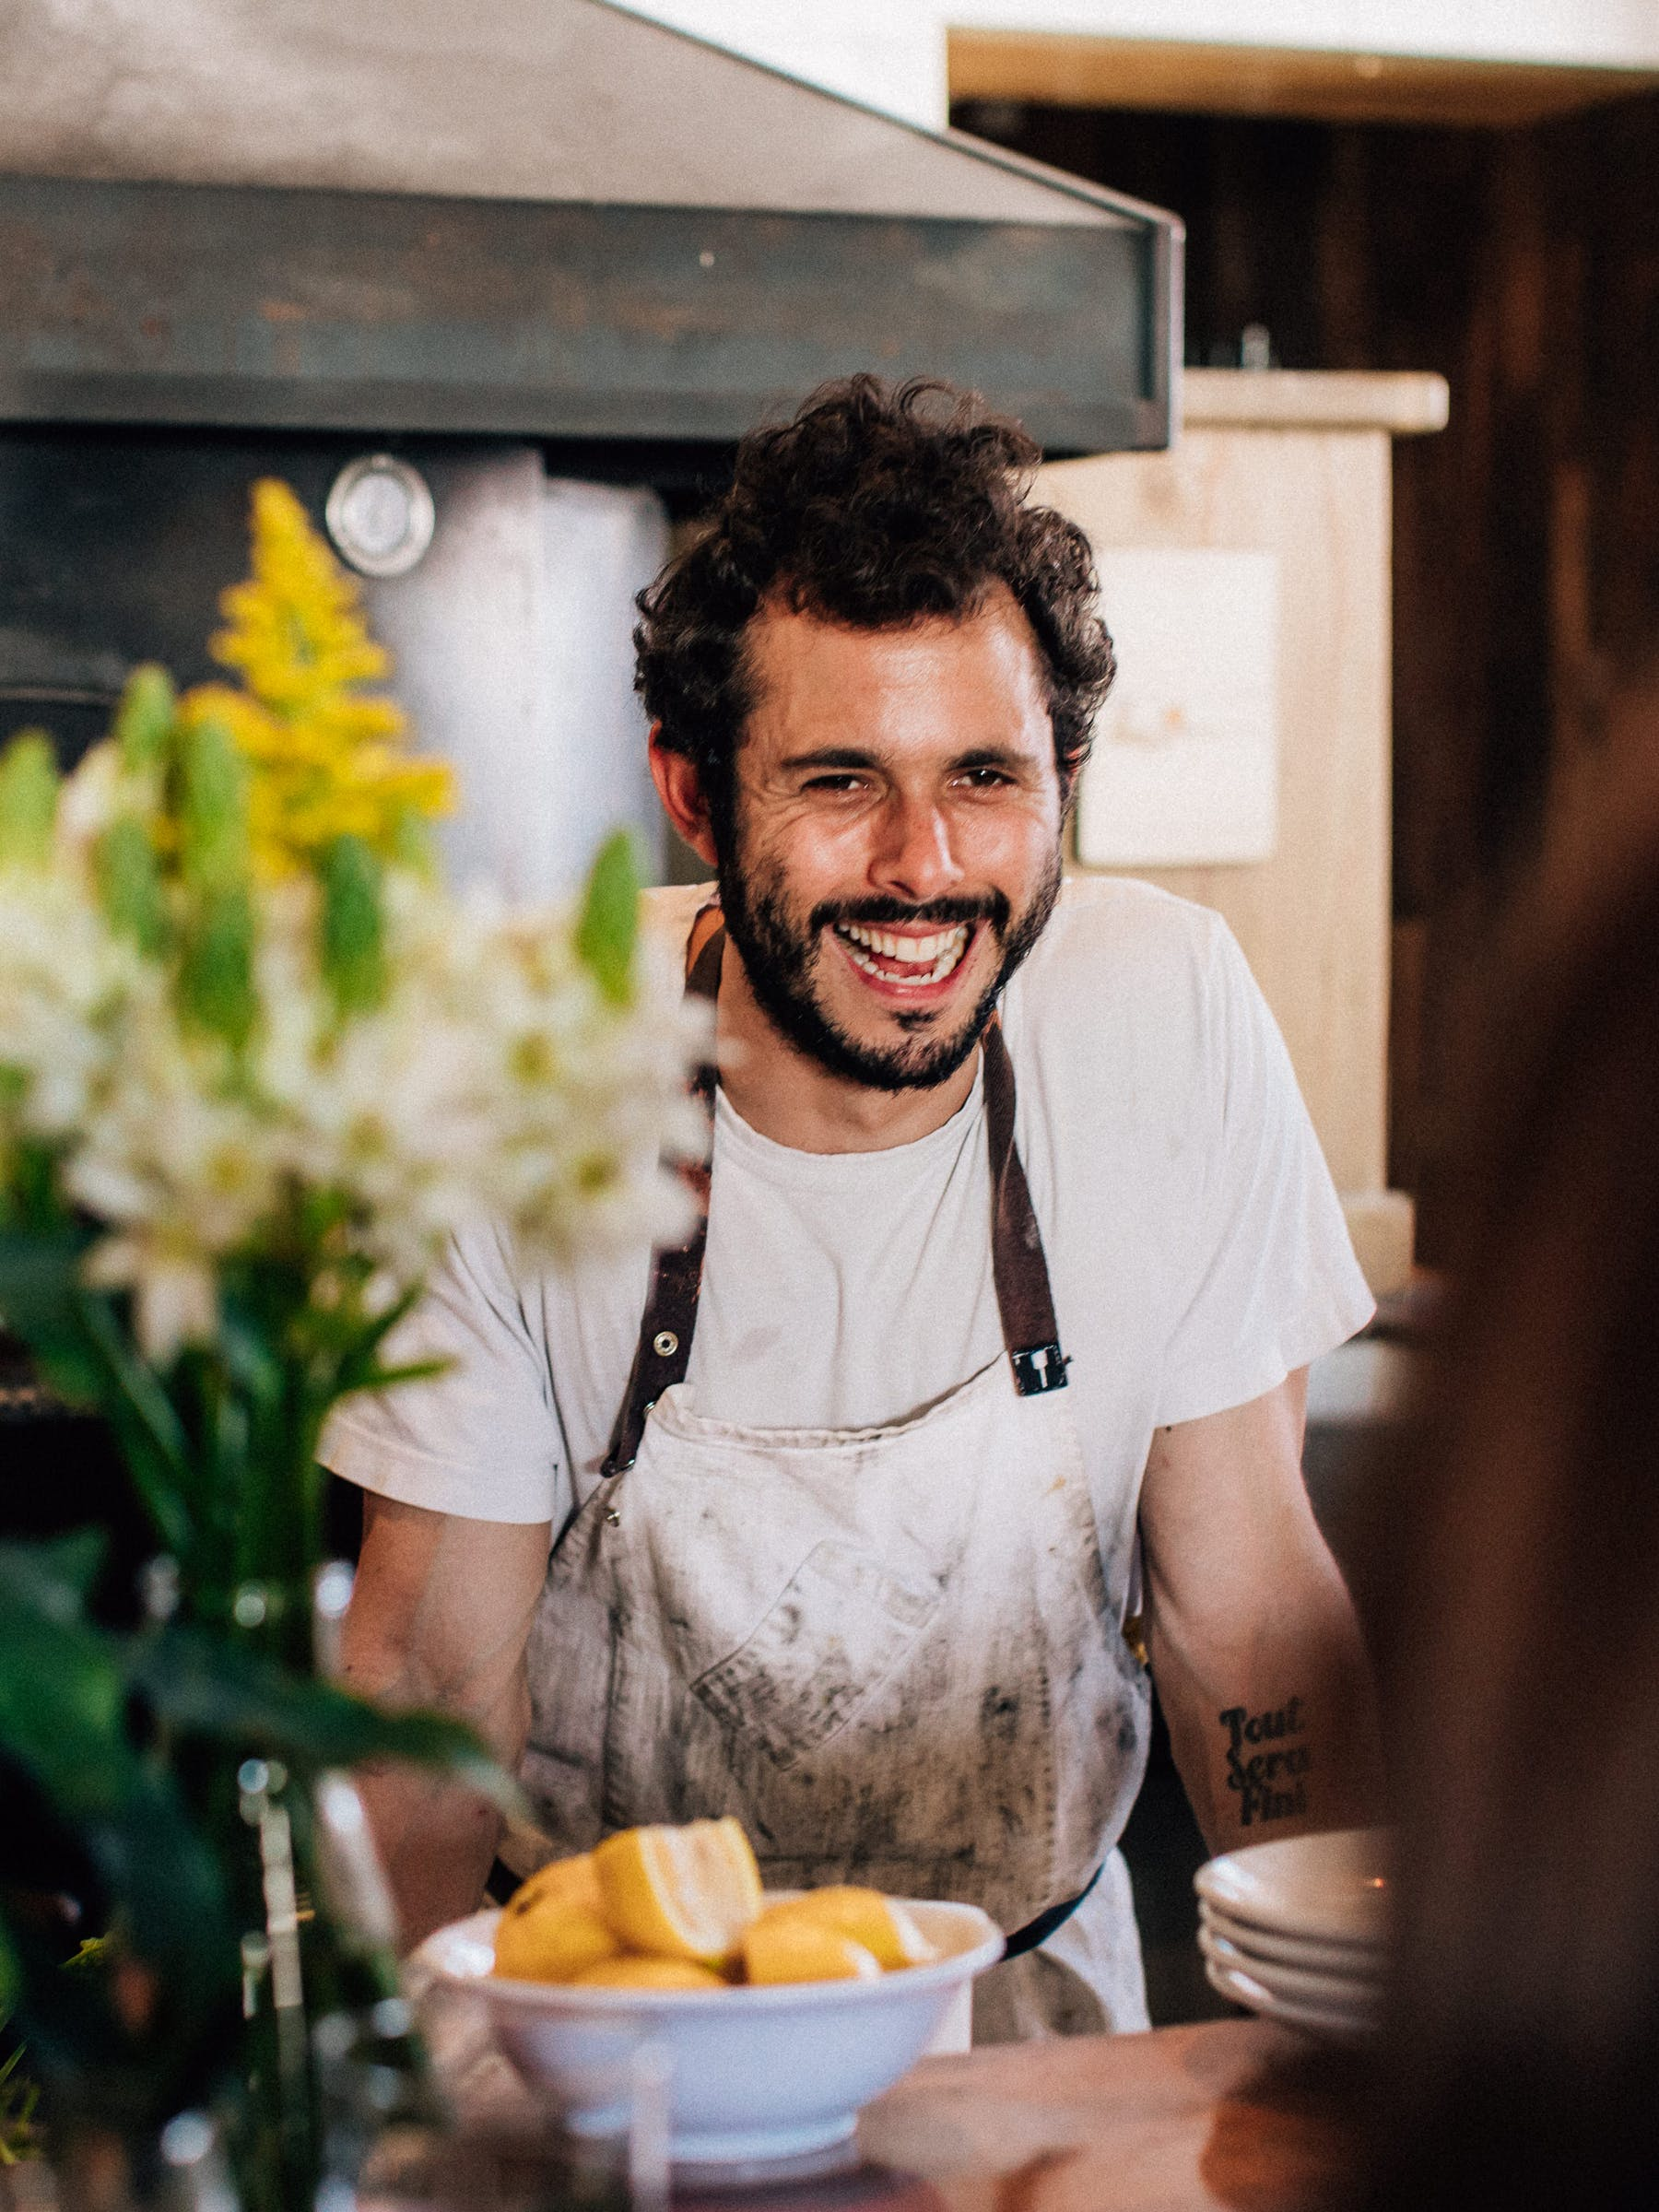 A close up of Chef Ari Taymor smiling at a counter